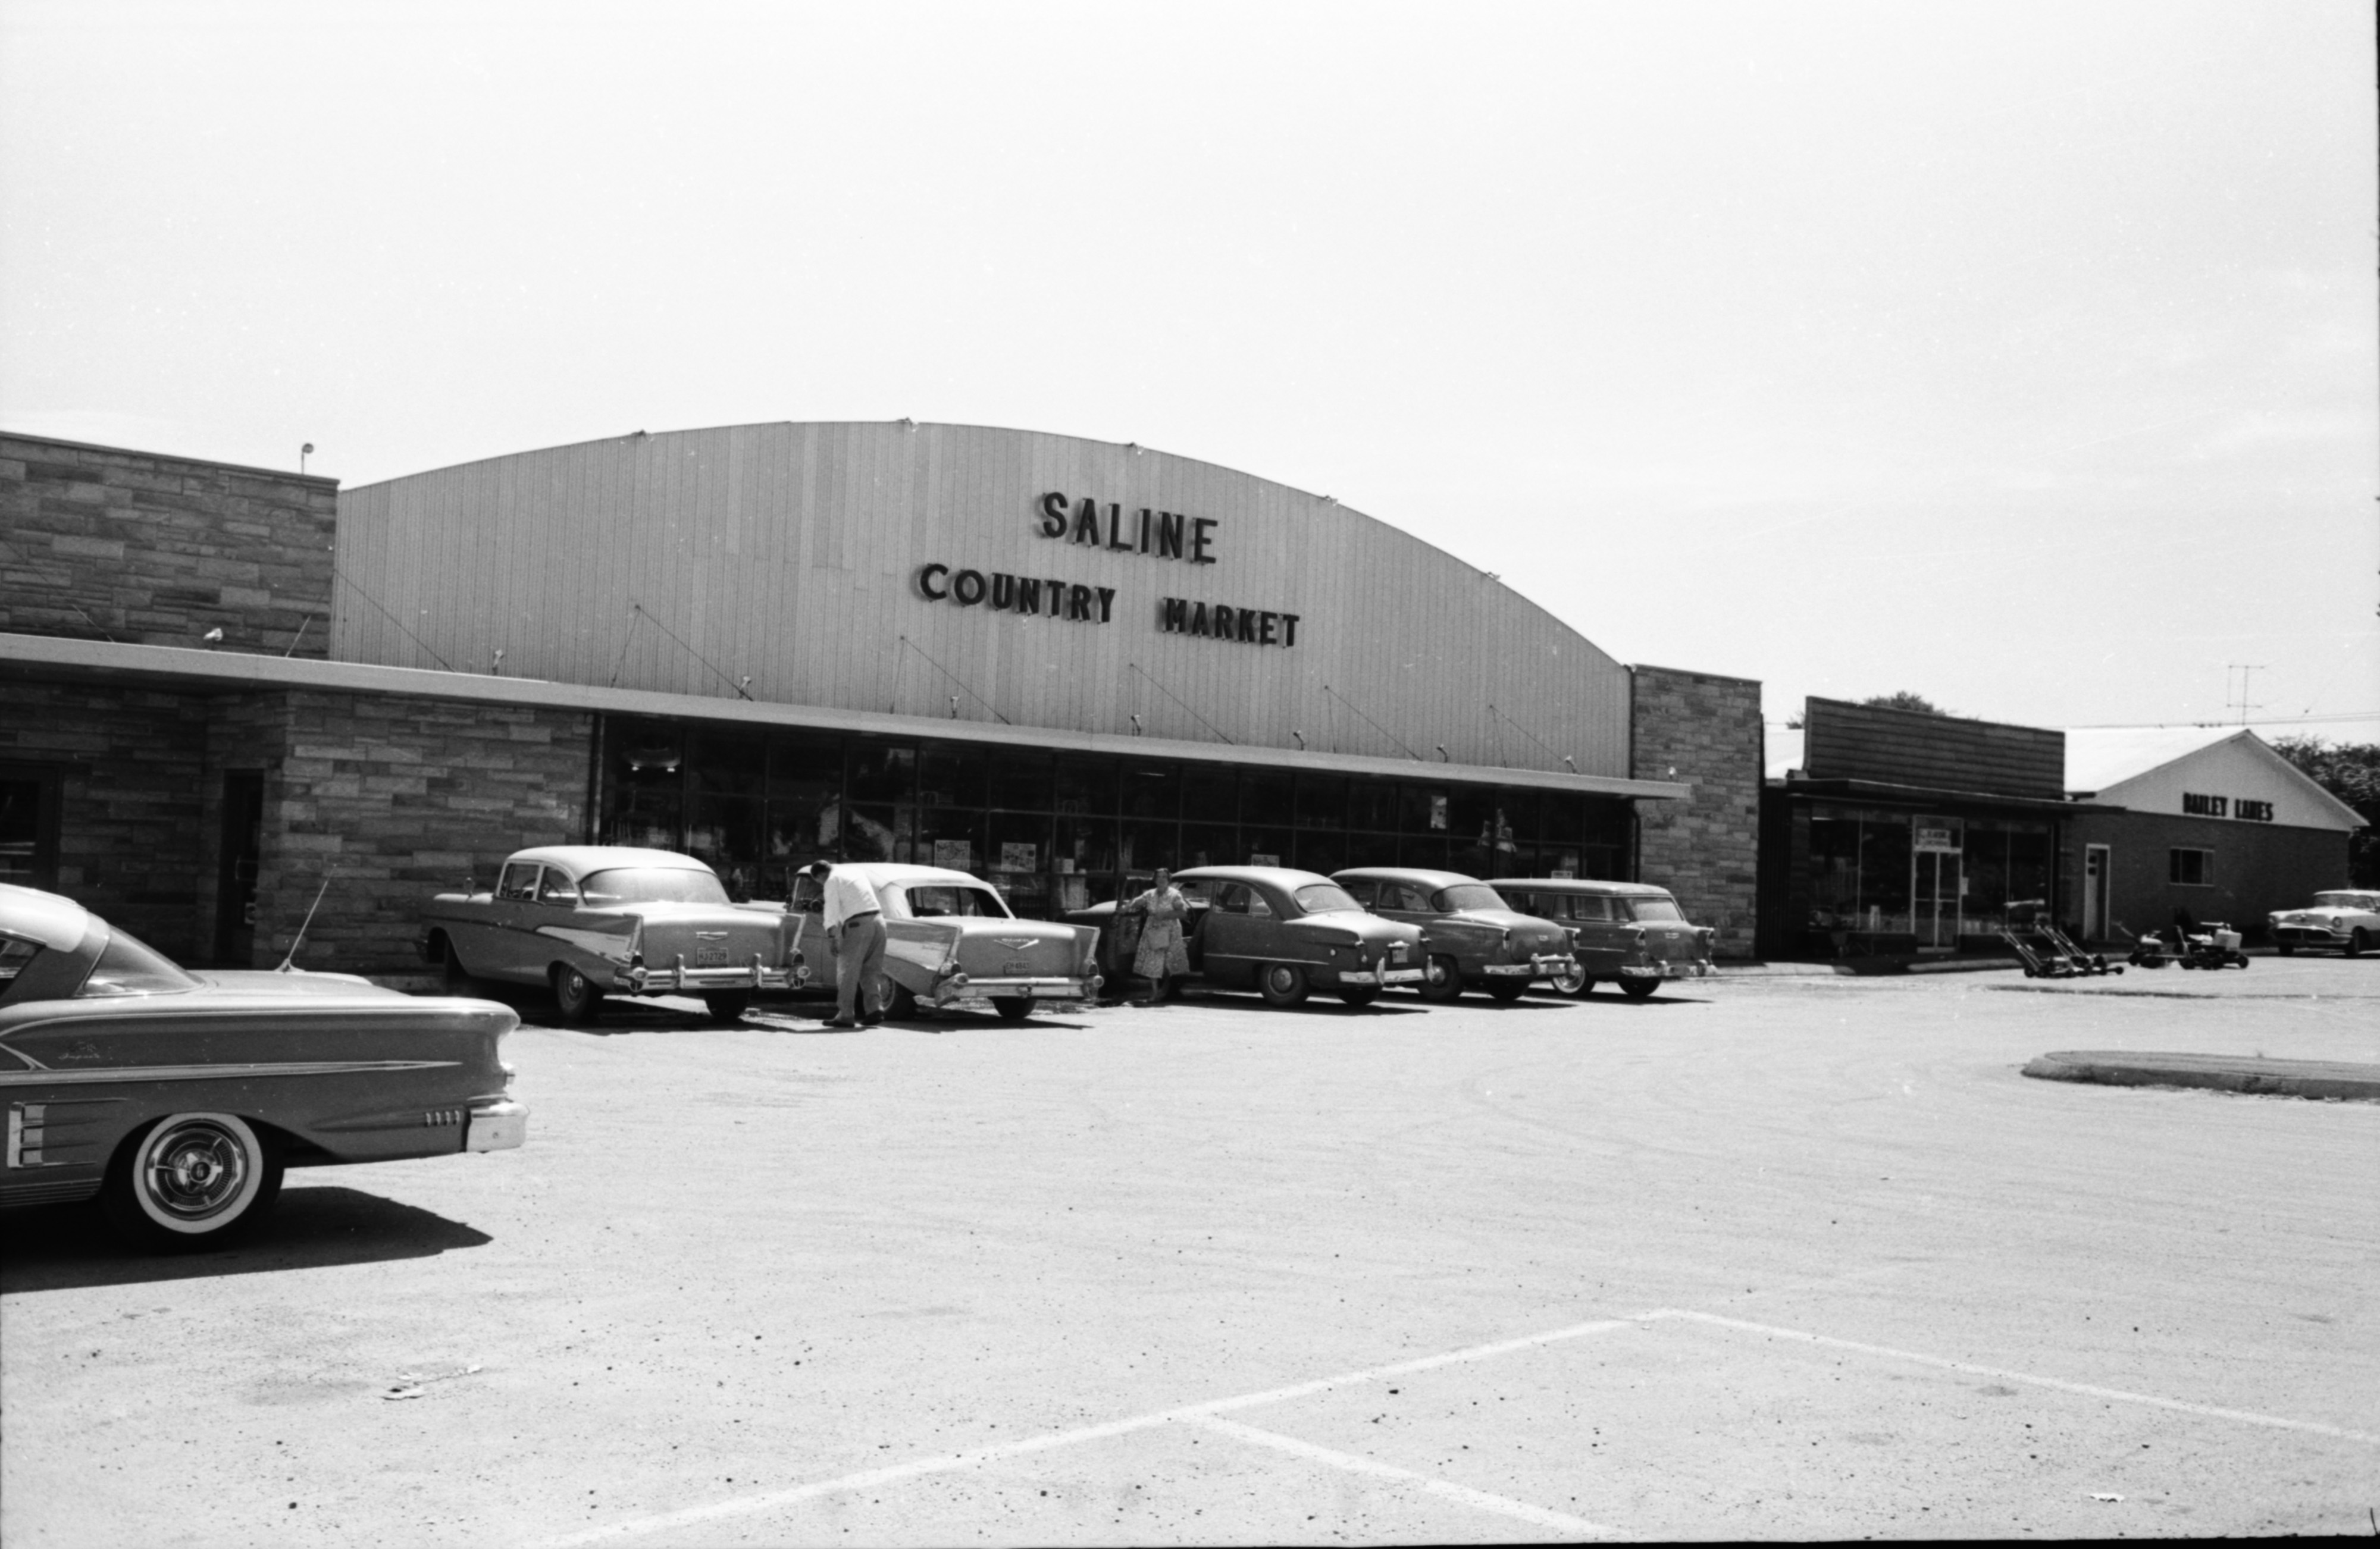 Saline Country Market image